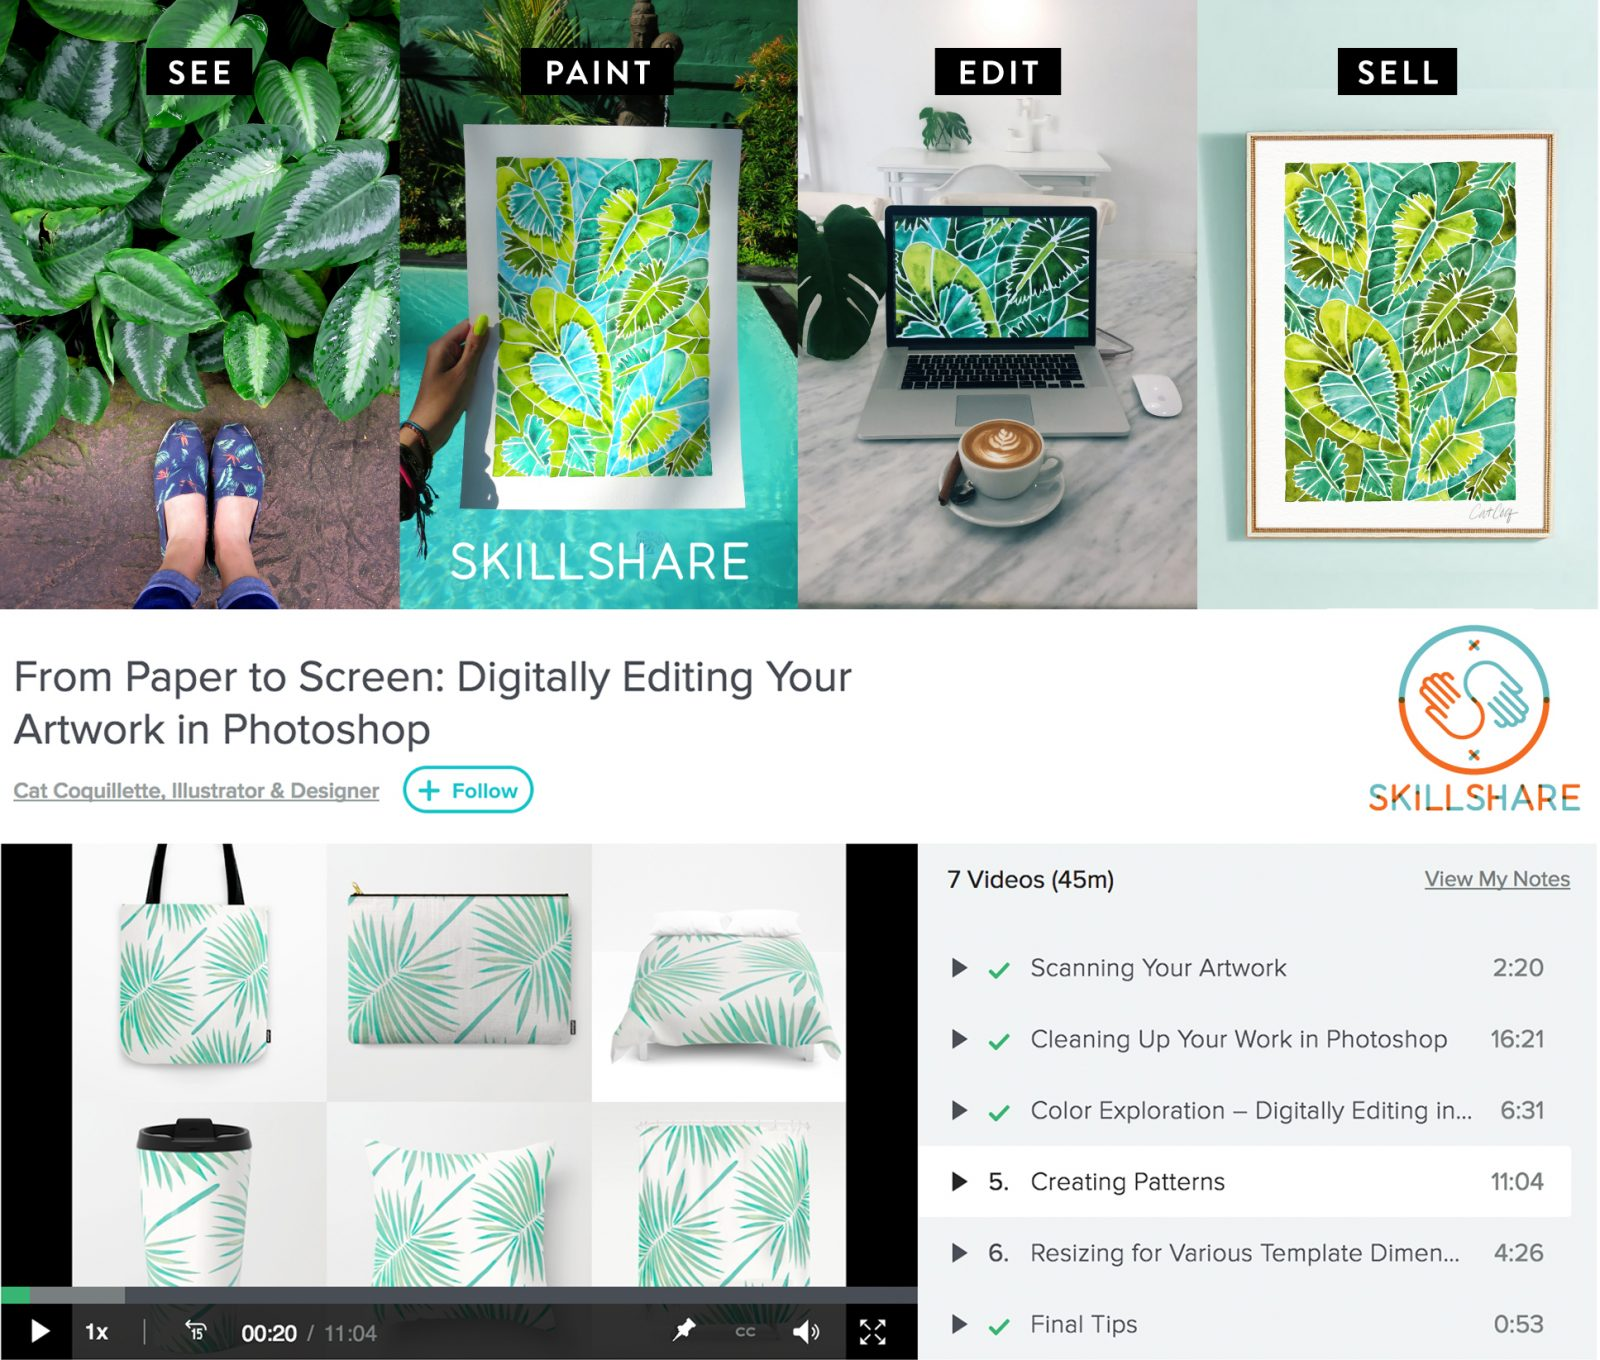 The Top Ten Best Sites to Learn New Art Skills Reviewed